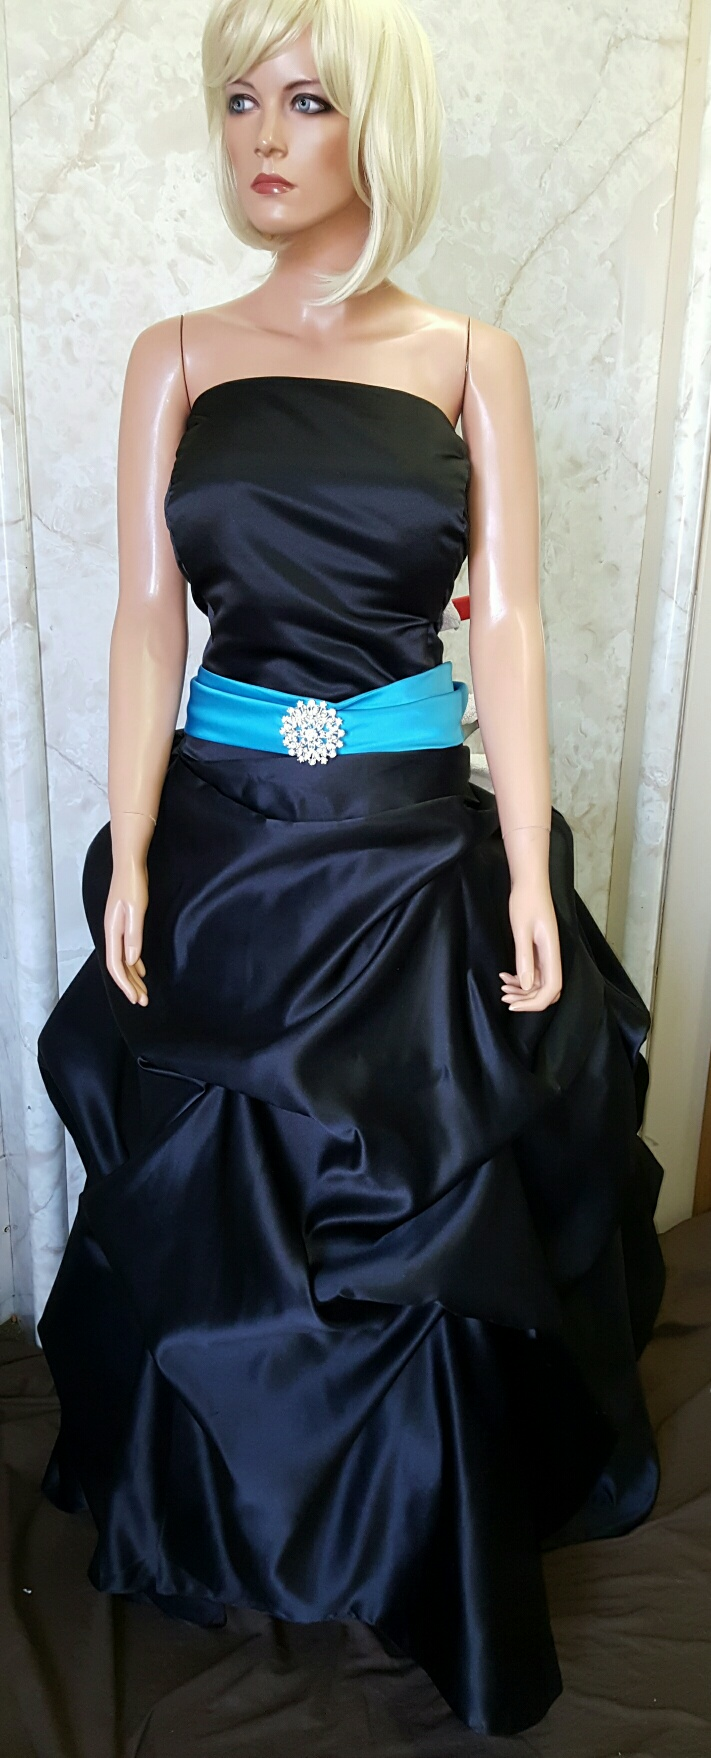 Black dress with turquoise sash